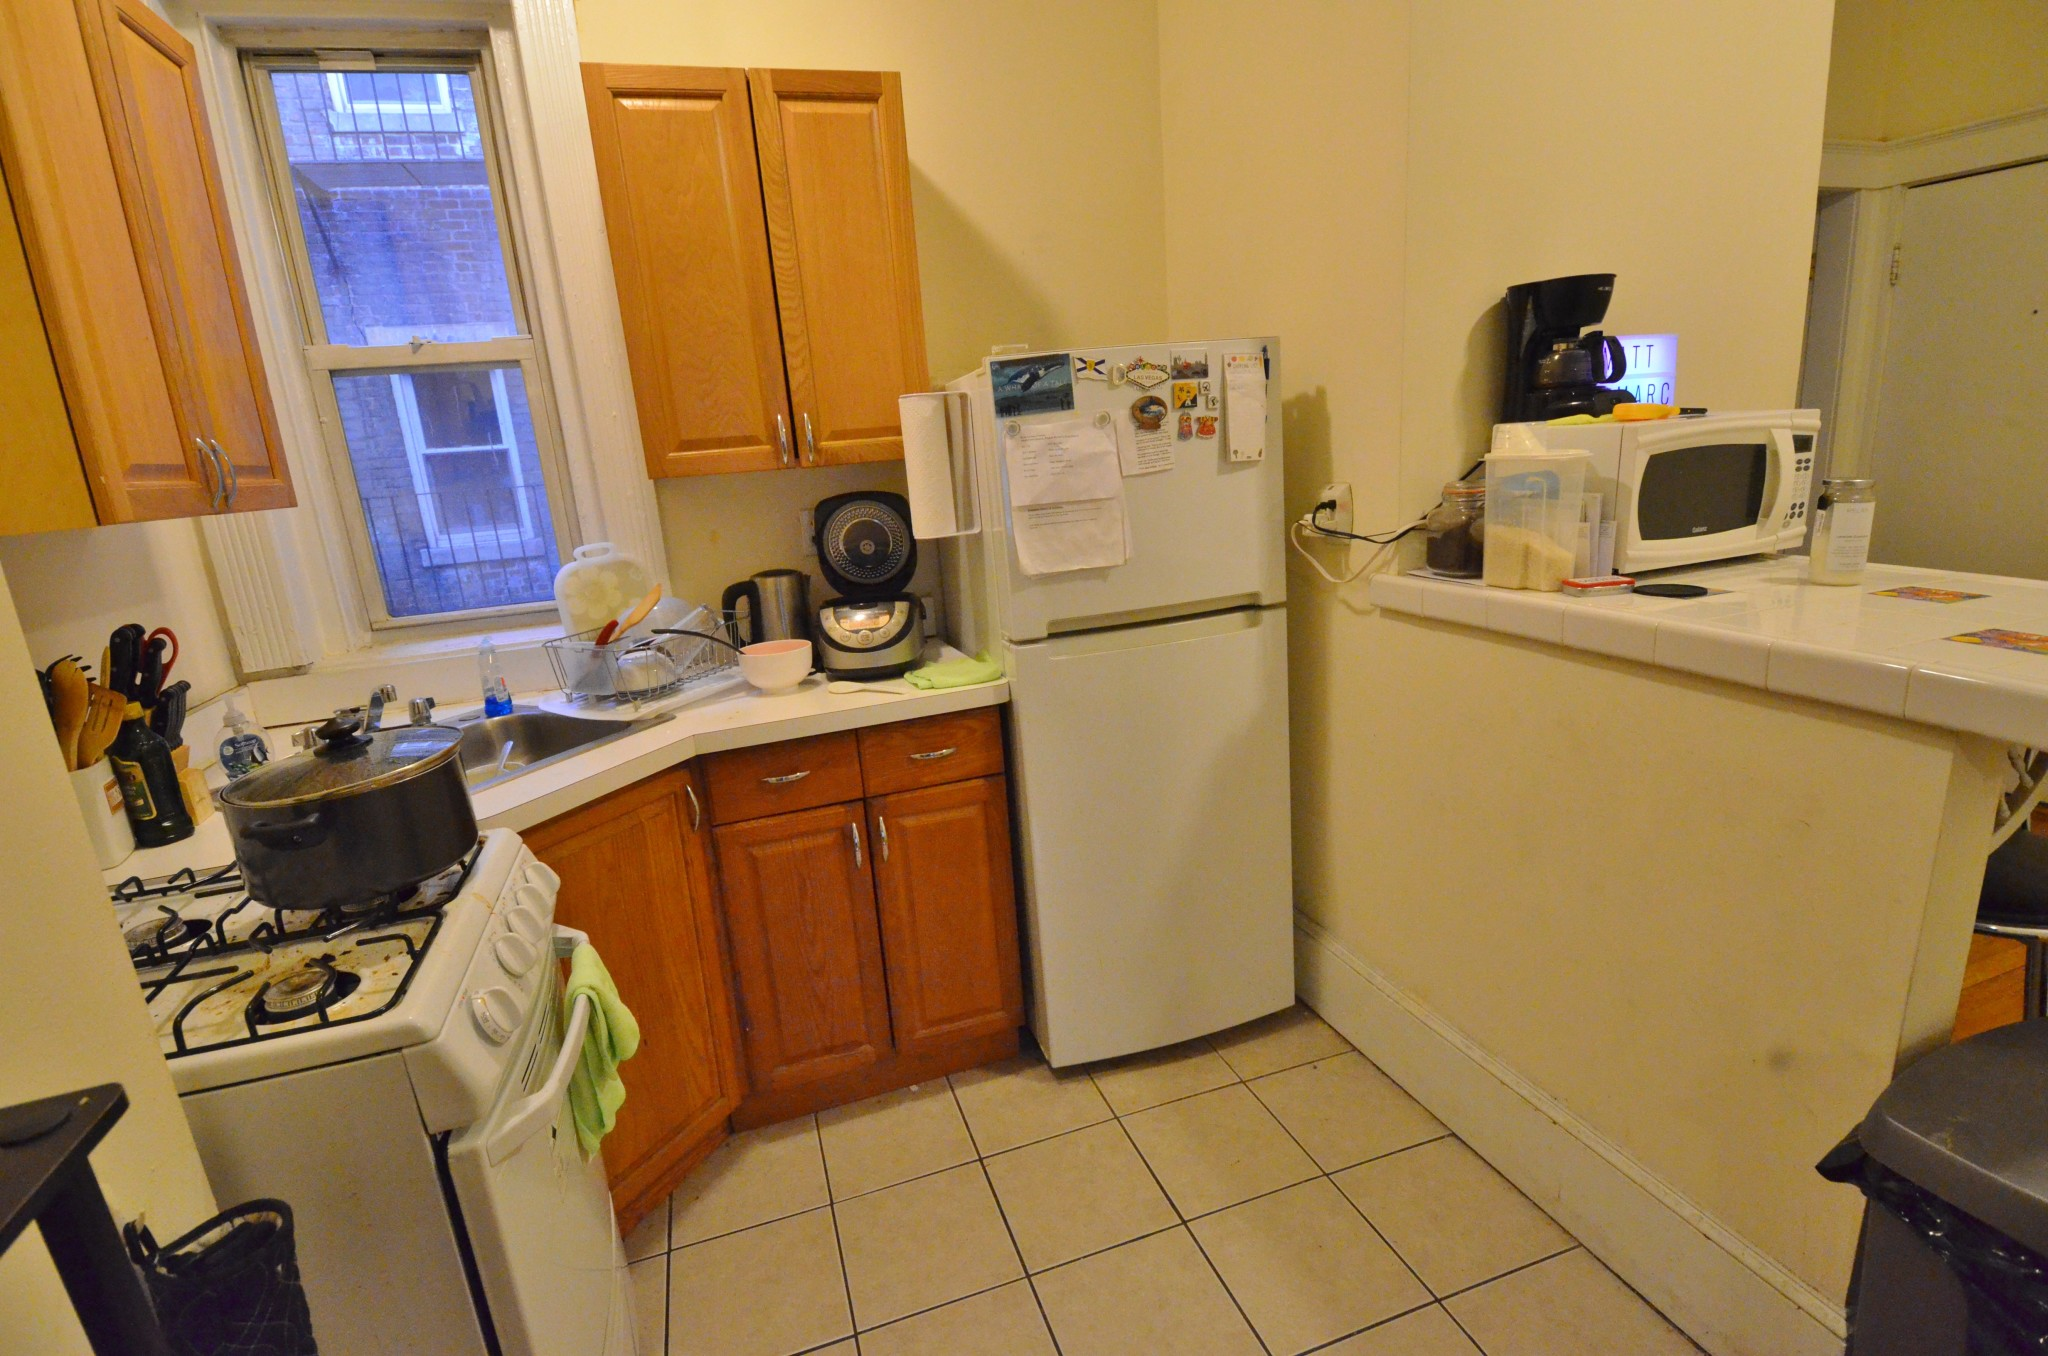 Avail 9/1 - Awesome, Spacious, exposed brick 1 BR Split on Hemenway